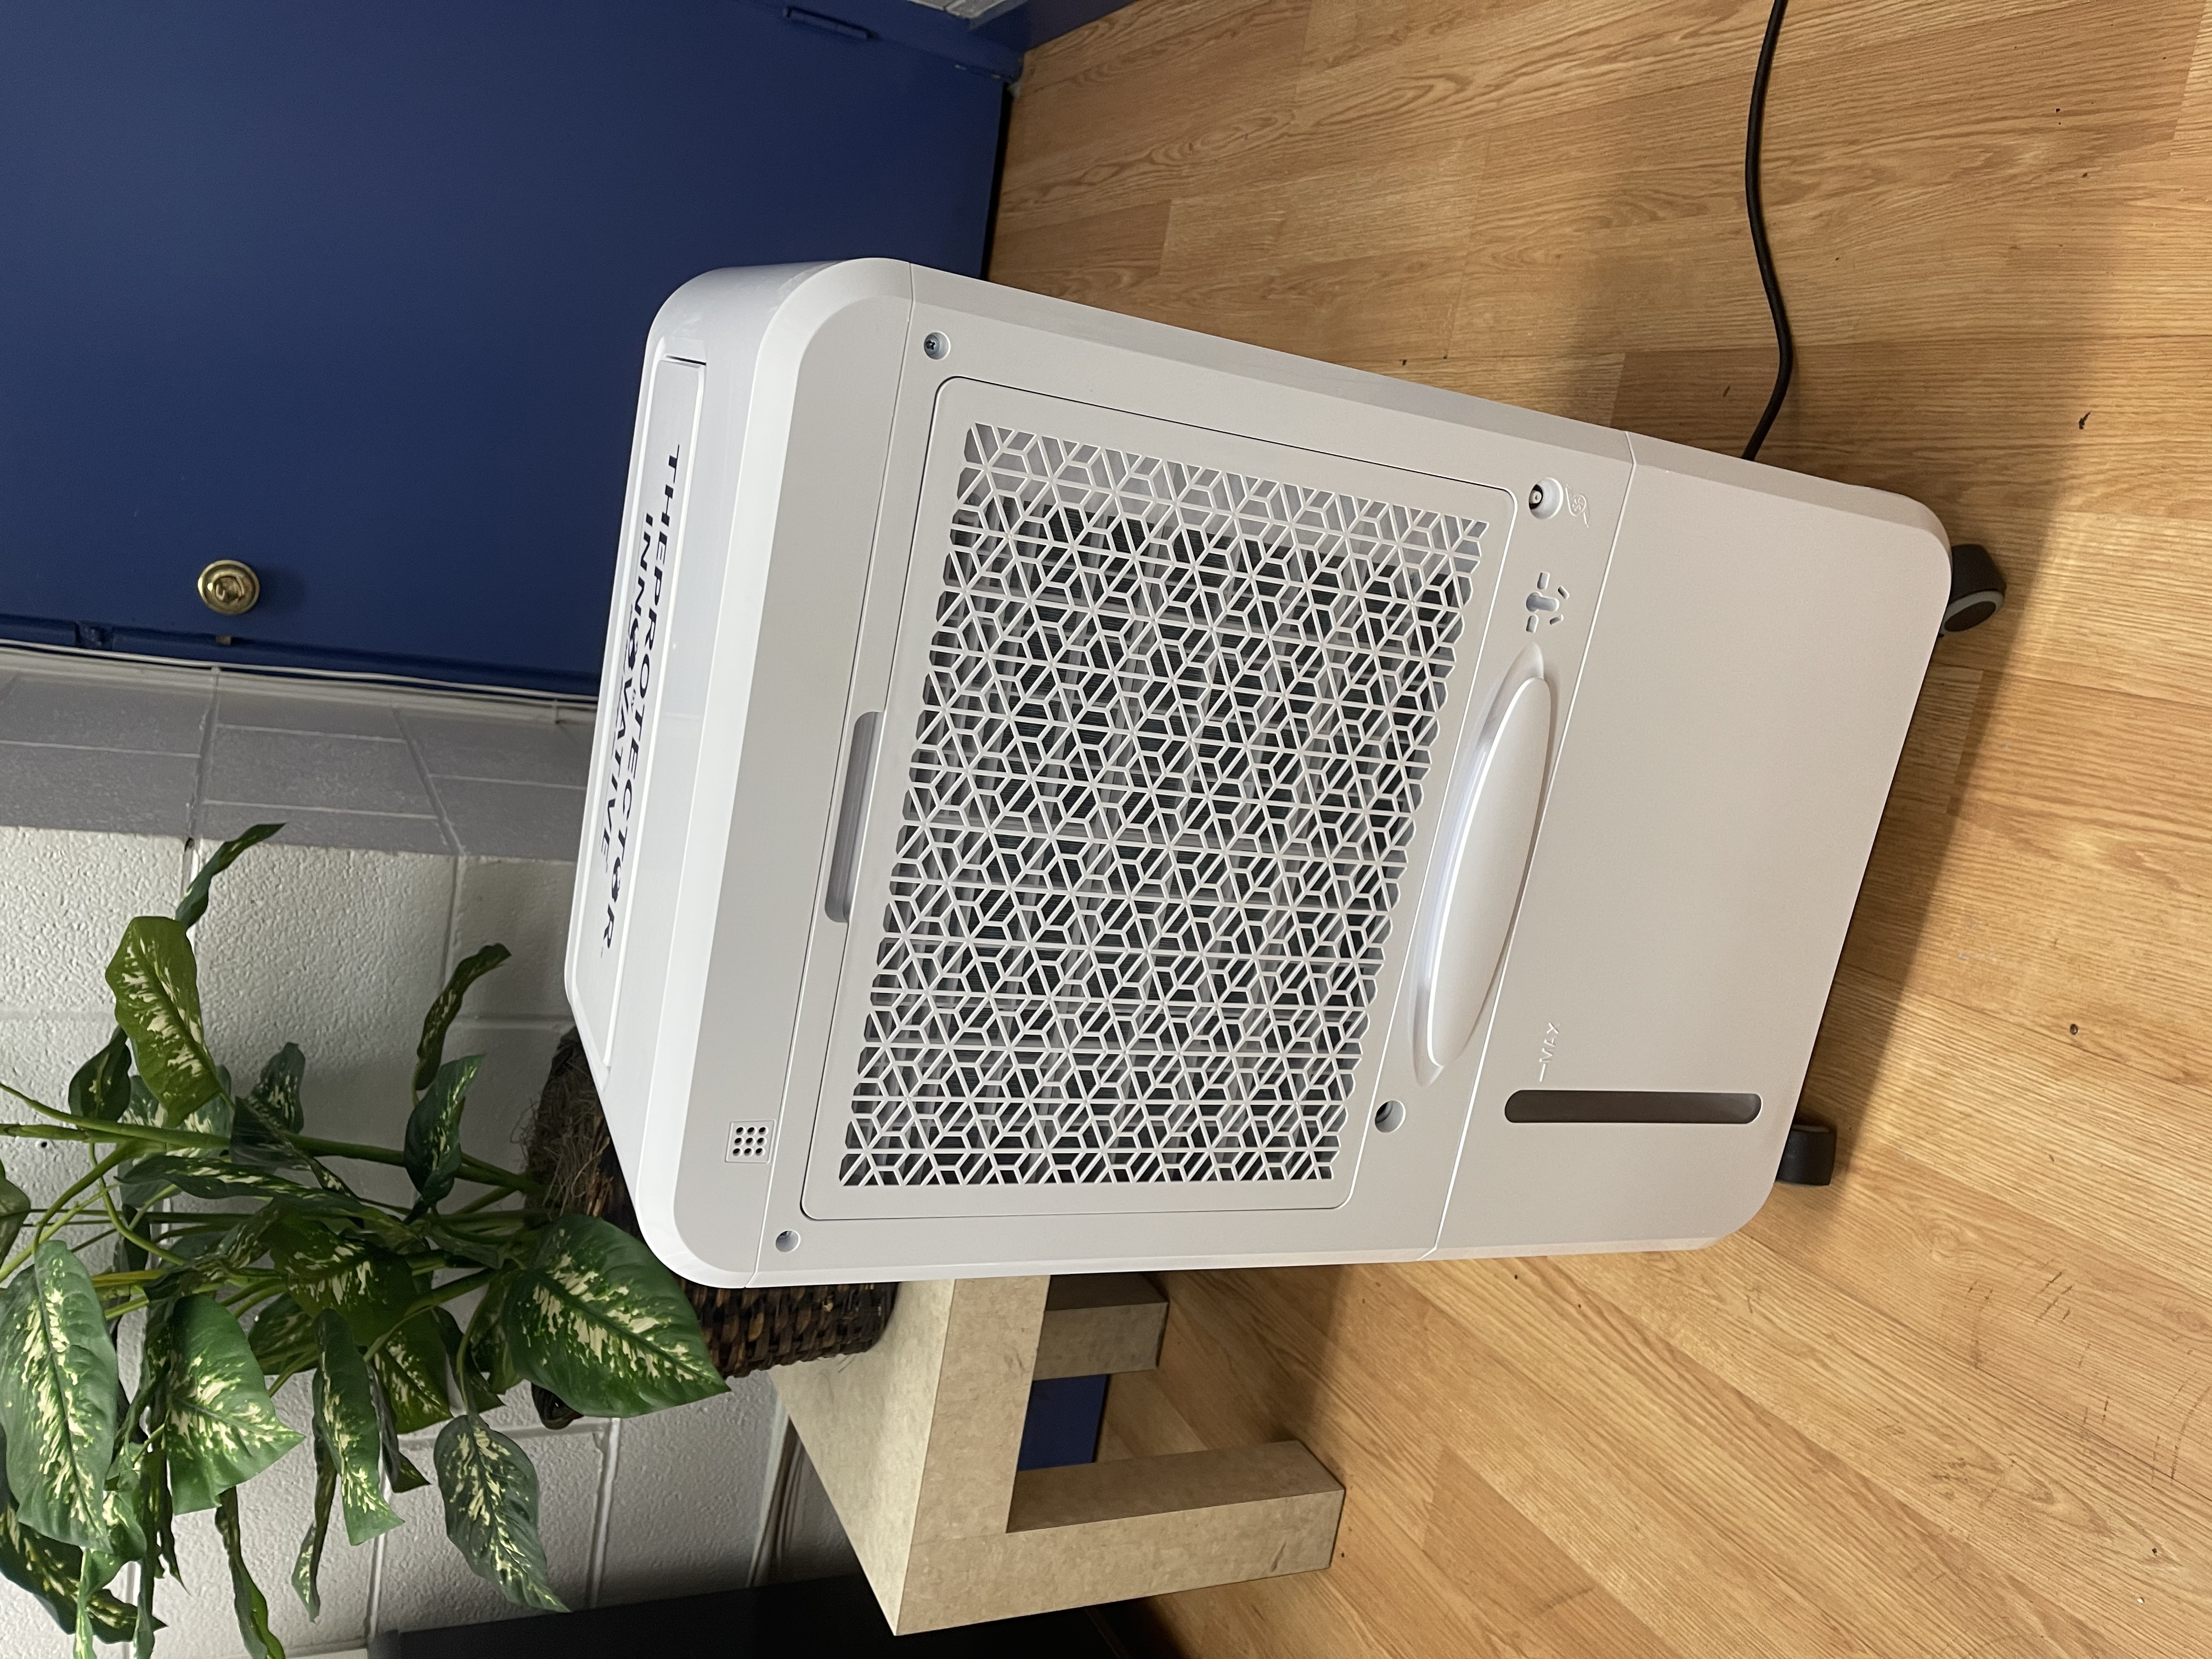 Picture of 110 PINT DEHUMIDIFIER